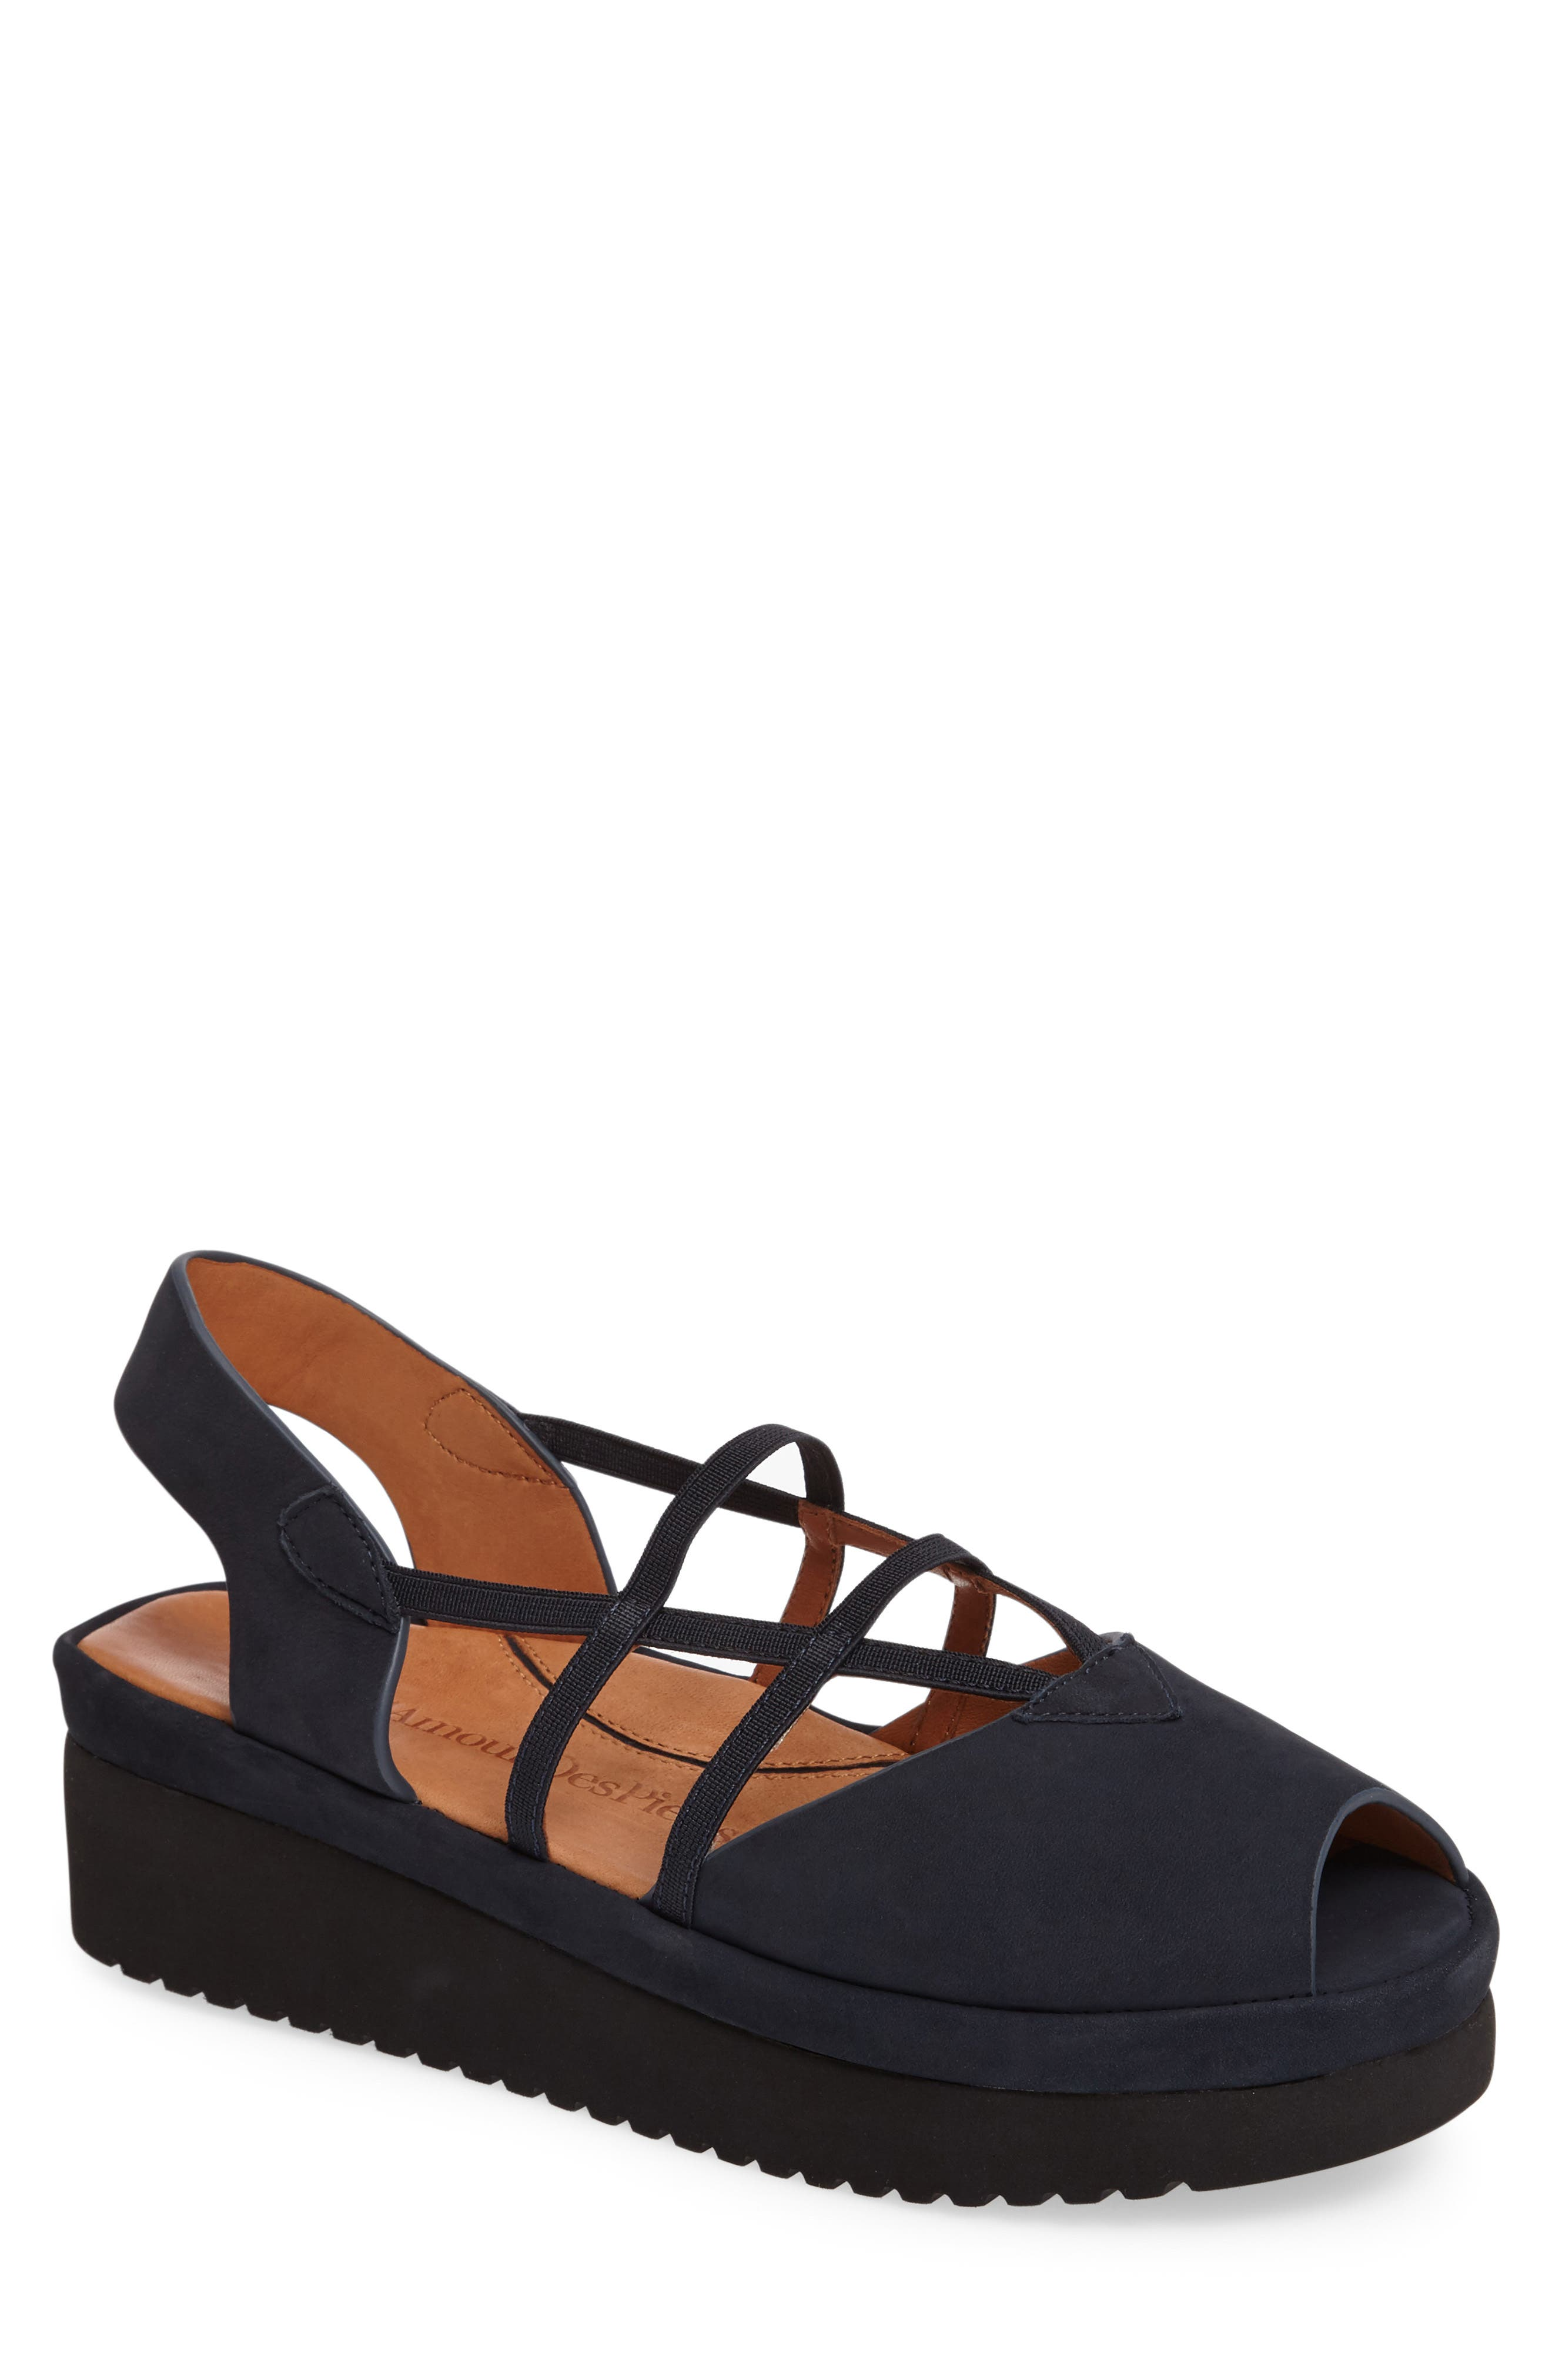 Adelais Platform Wedge Sandal,                             Main thumbnail 1, color,                             NAVY NUBUCK